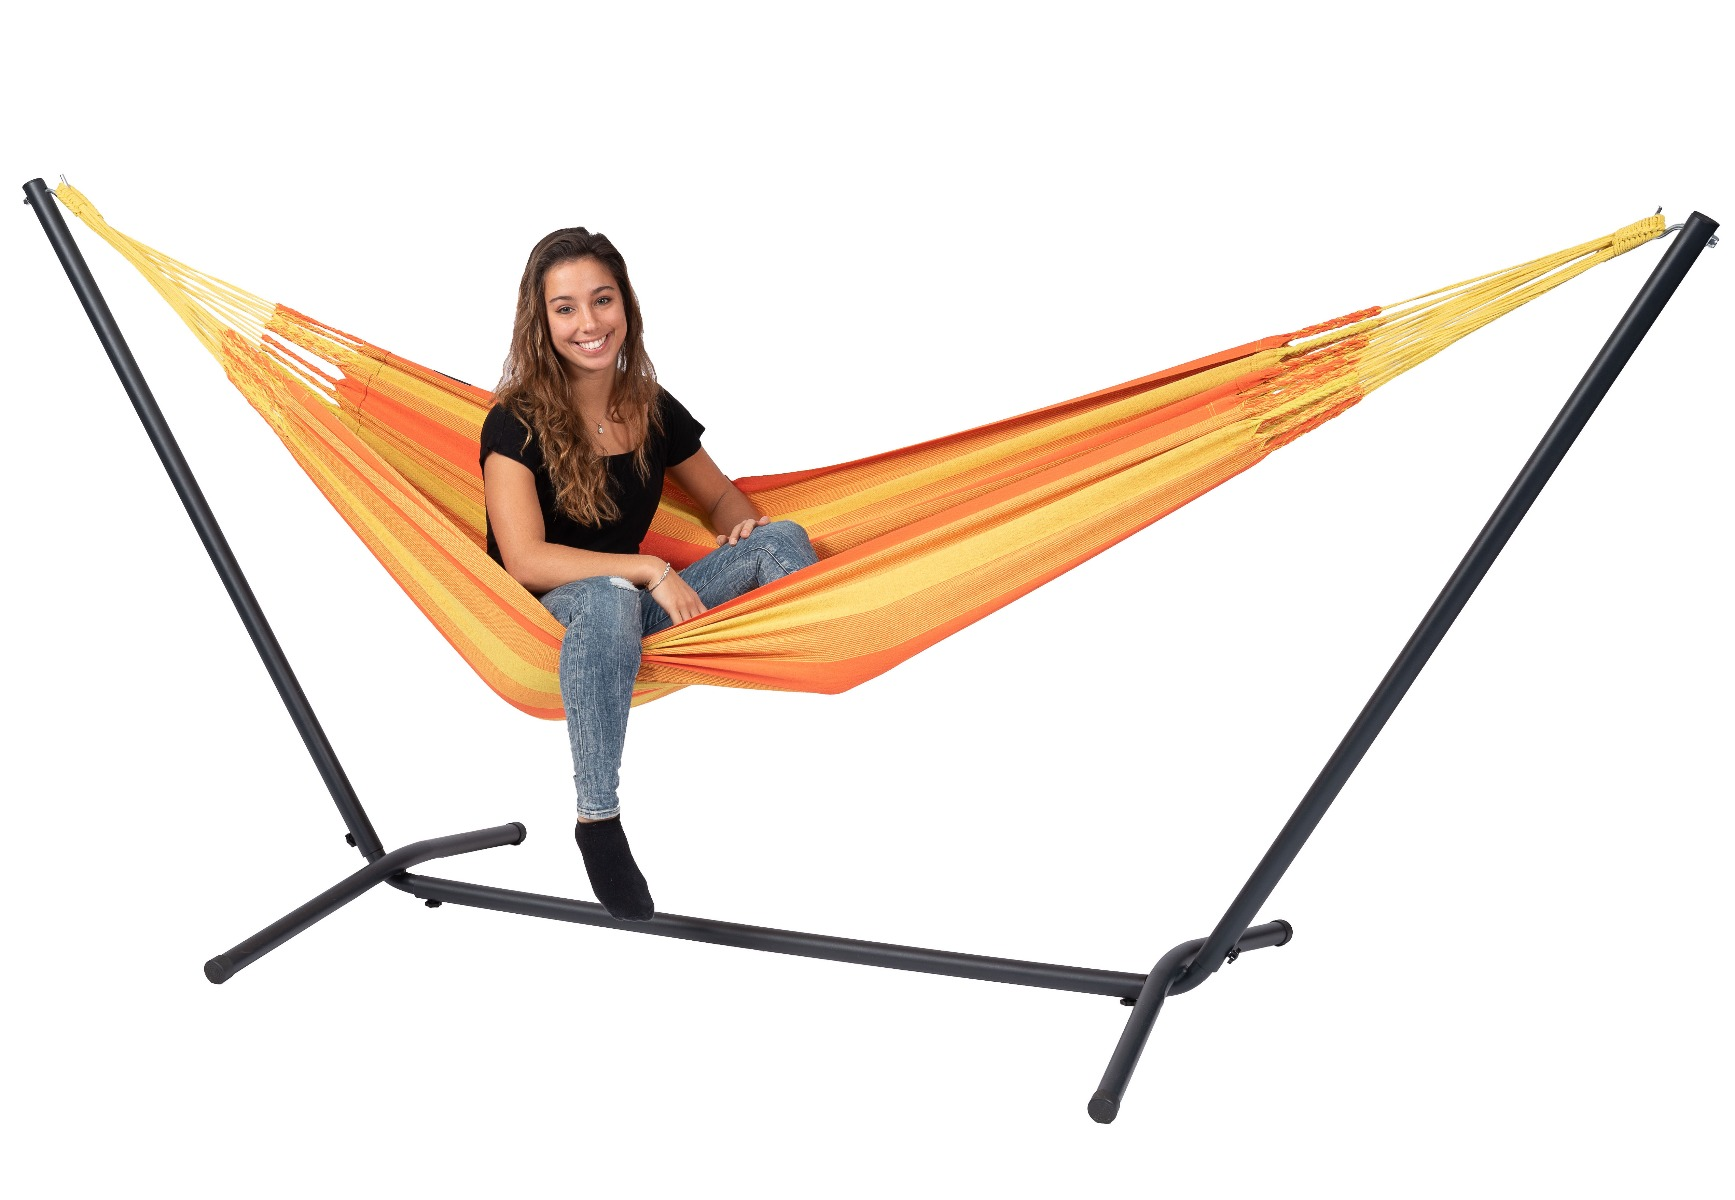 Hangmat met Standaard E�npersoons 'Easy & Dream' Orange - Oranje - Tropilex �